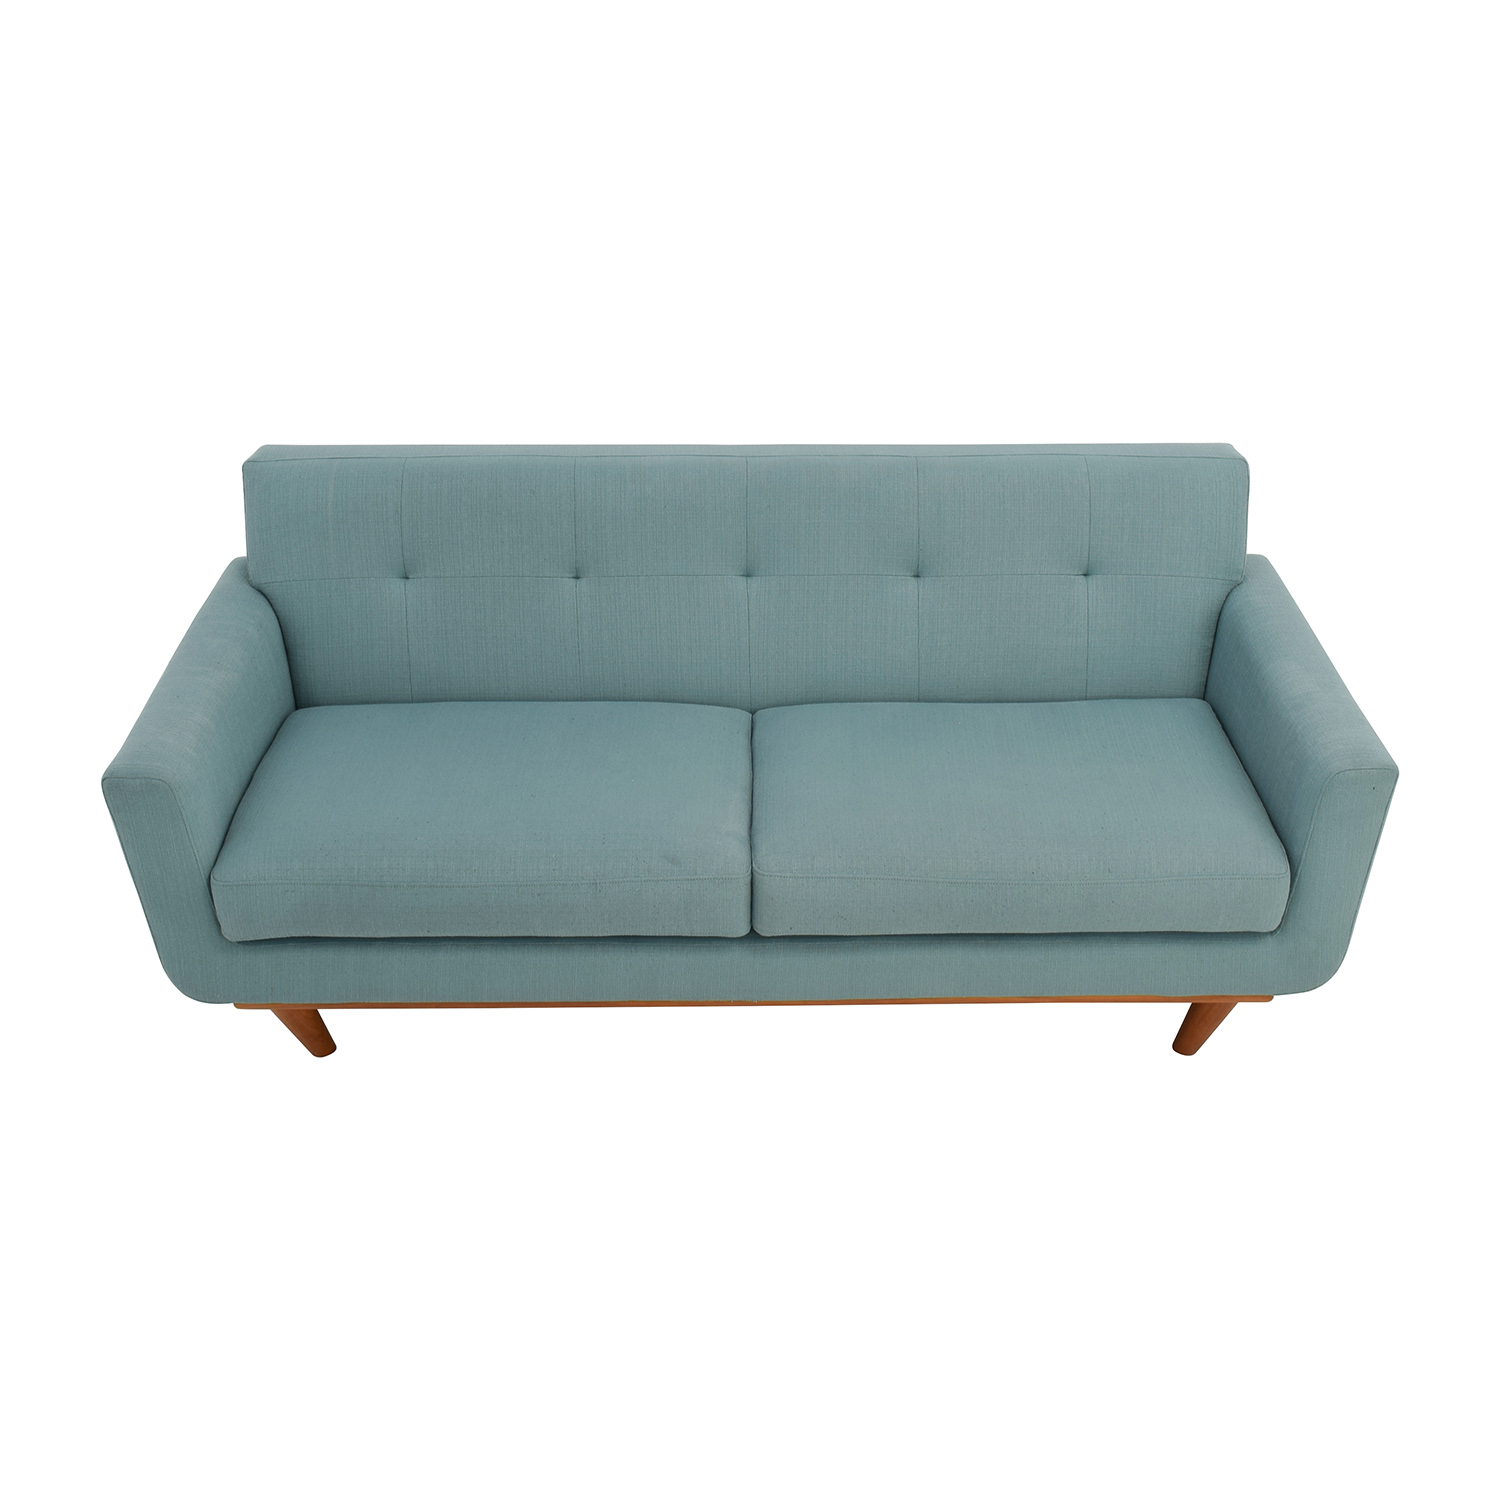 Fresh teal sofas for sale marmsweb marmsweb for Teal leather sofa